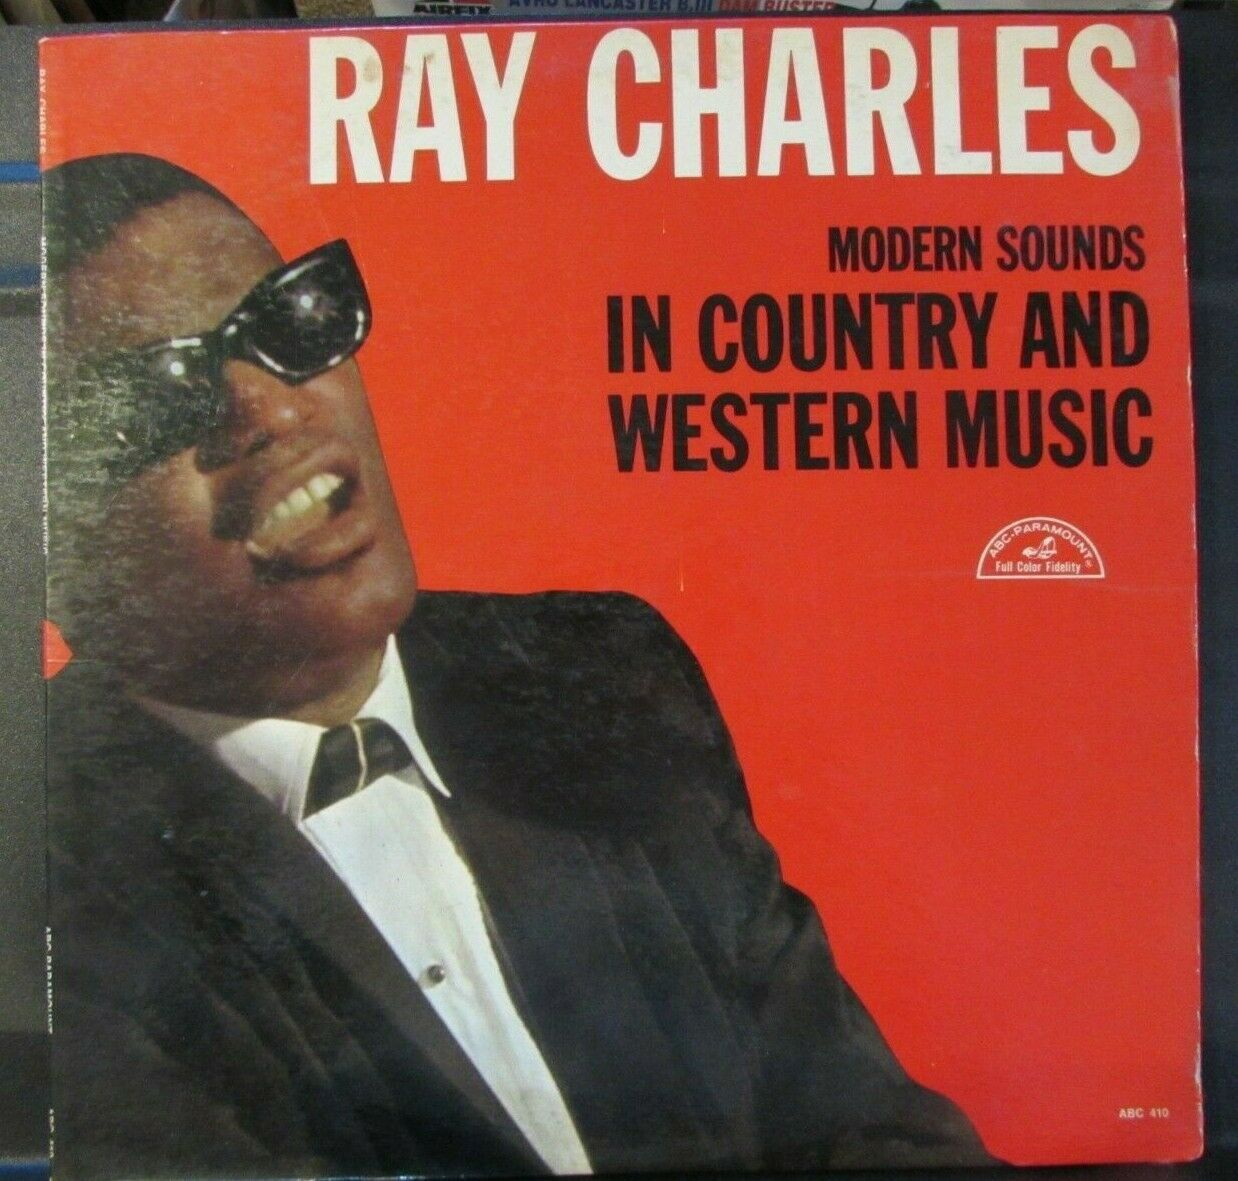 Modern Sounds in Country and Western Music by Ray Charles Vinyl LP